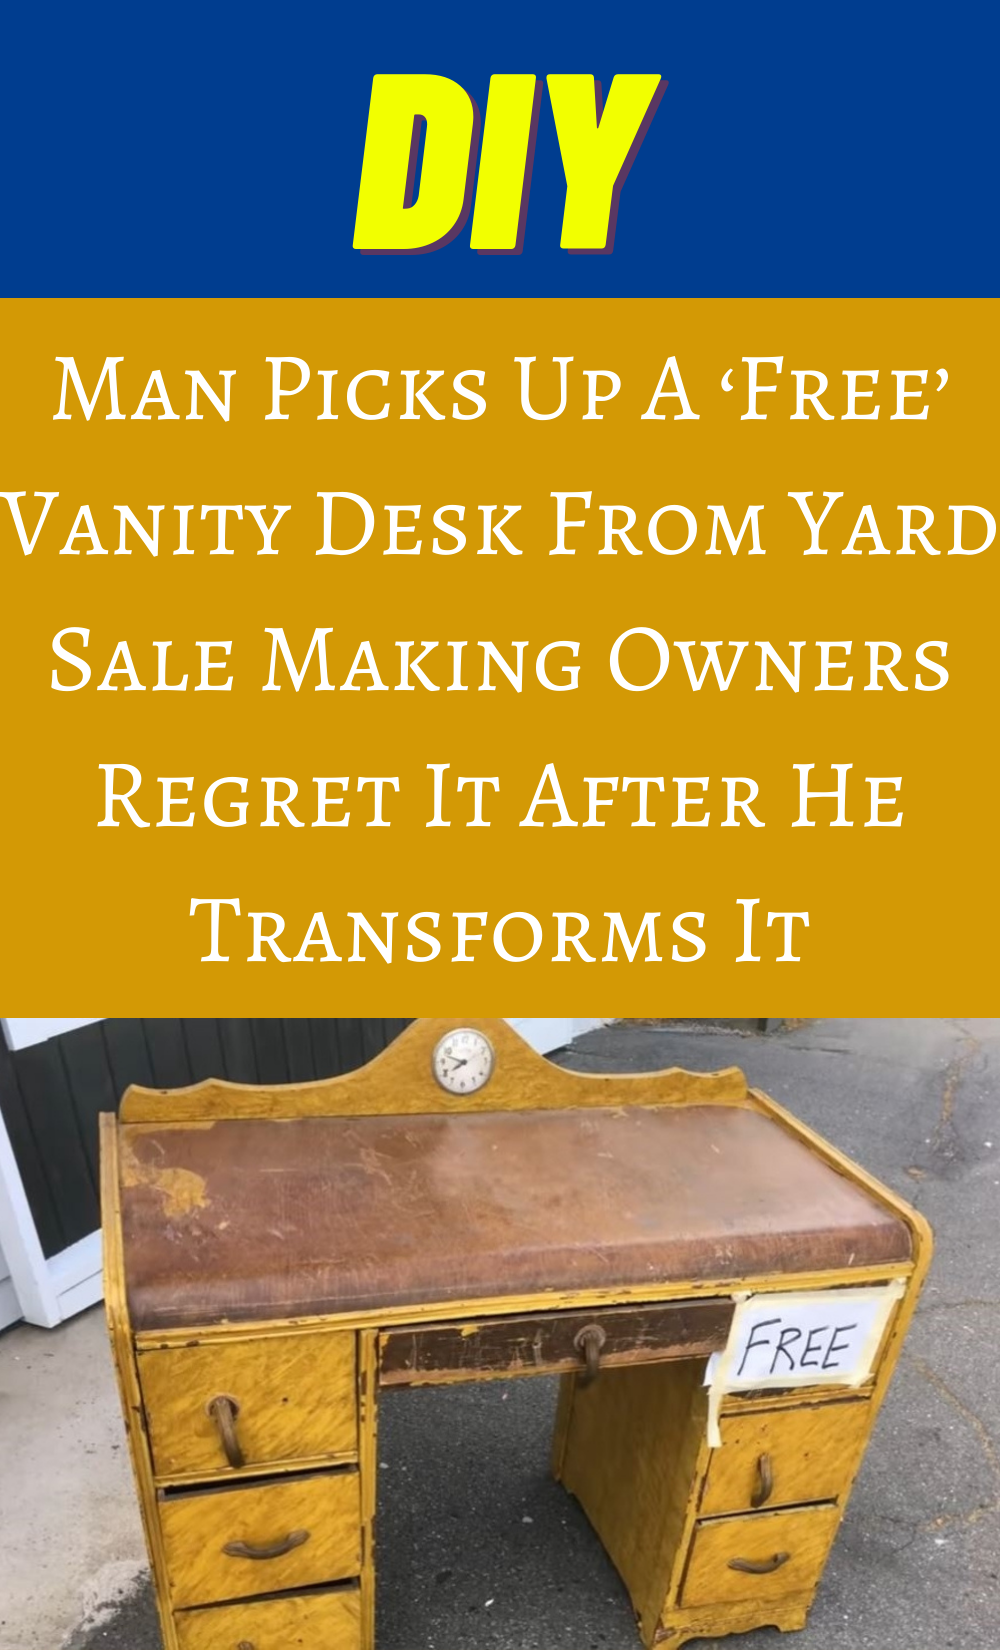 Man Picks Up A 'Free' Vanity Desk From Yard Sale M